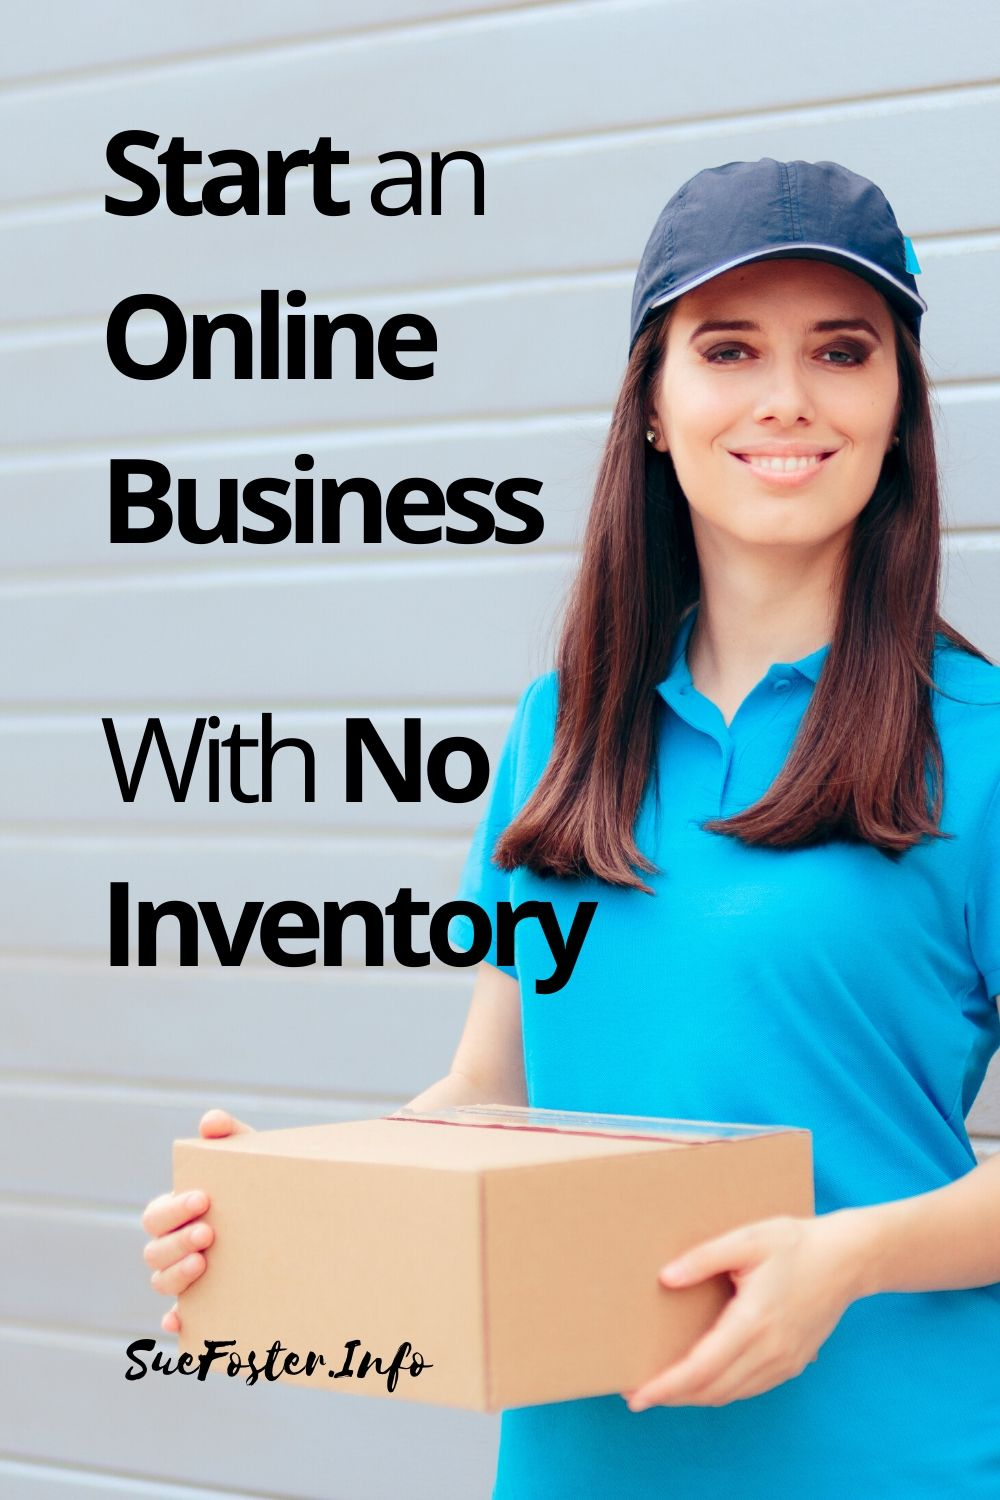 Start an online business with no inventory. Have products shipped directly to customers.